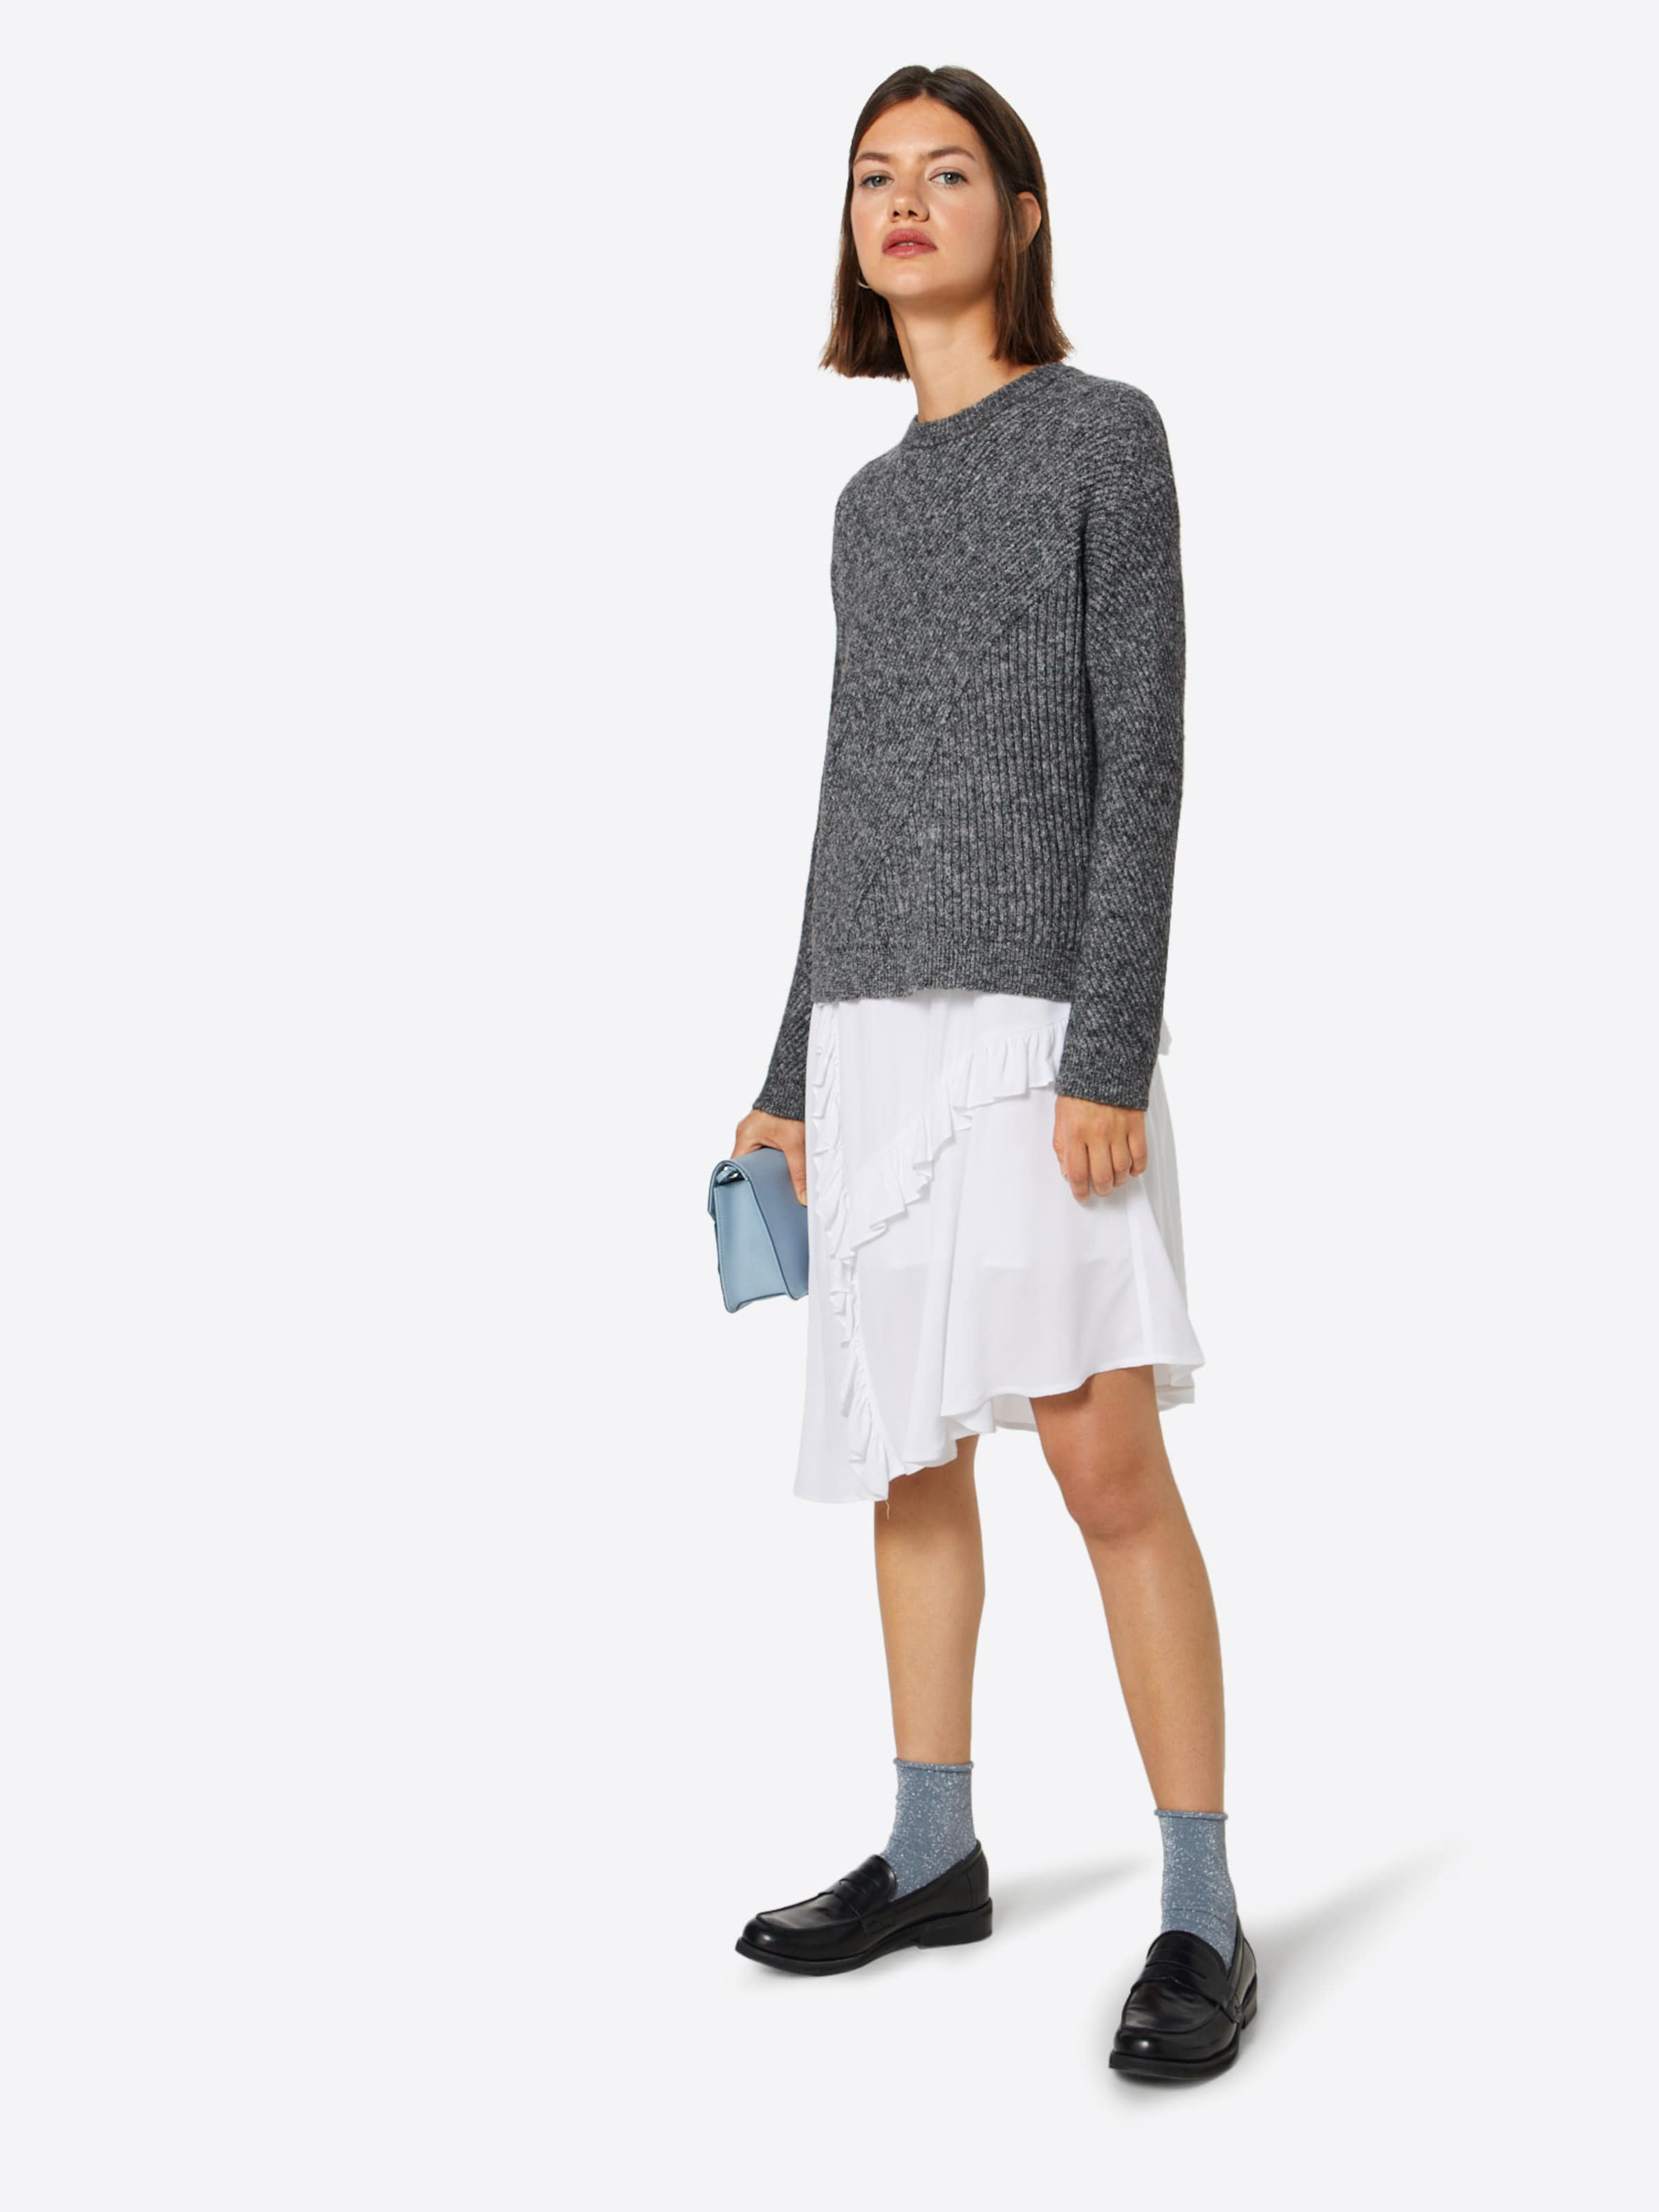 Pieces Dunkelgrau Pullover Pullover In In Pieces OukXiPZ